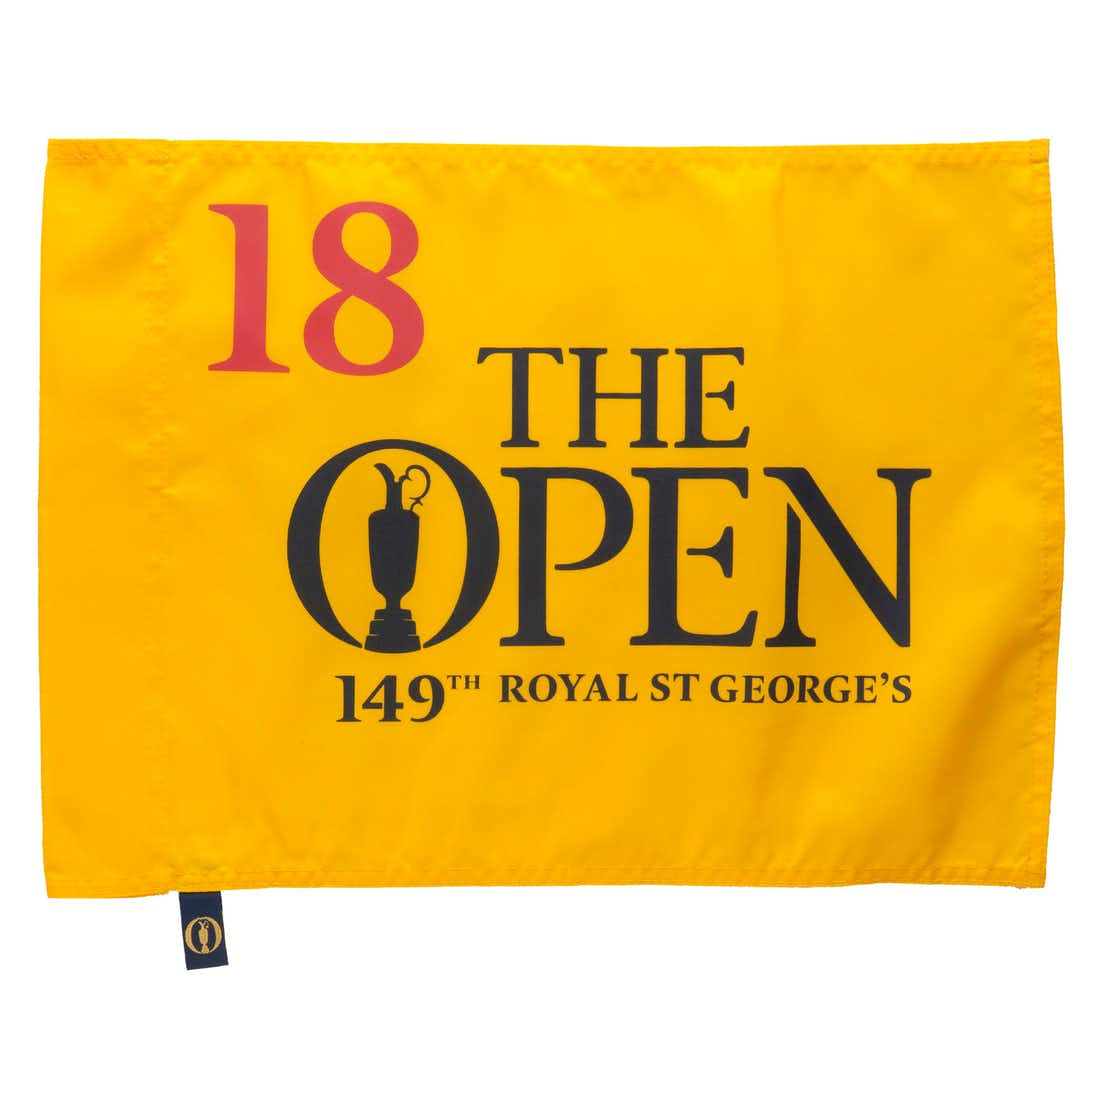 149th Royal St George's Pin Flag - Yellow